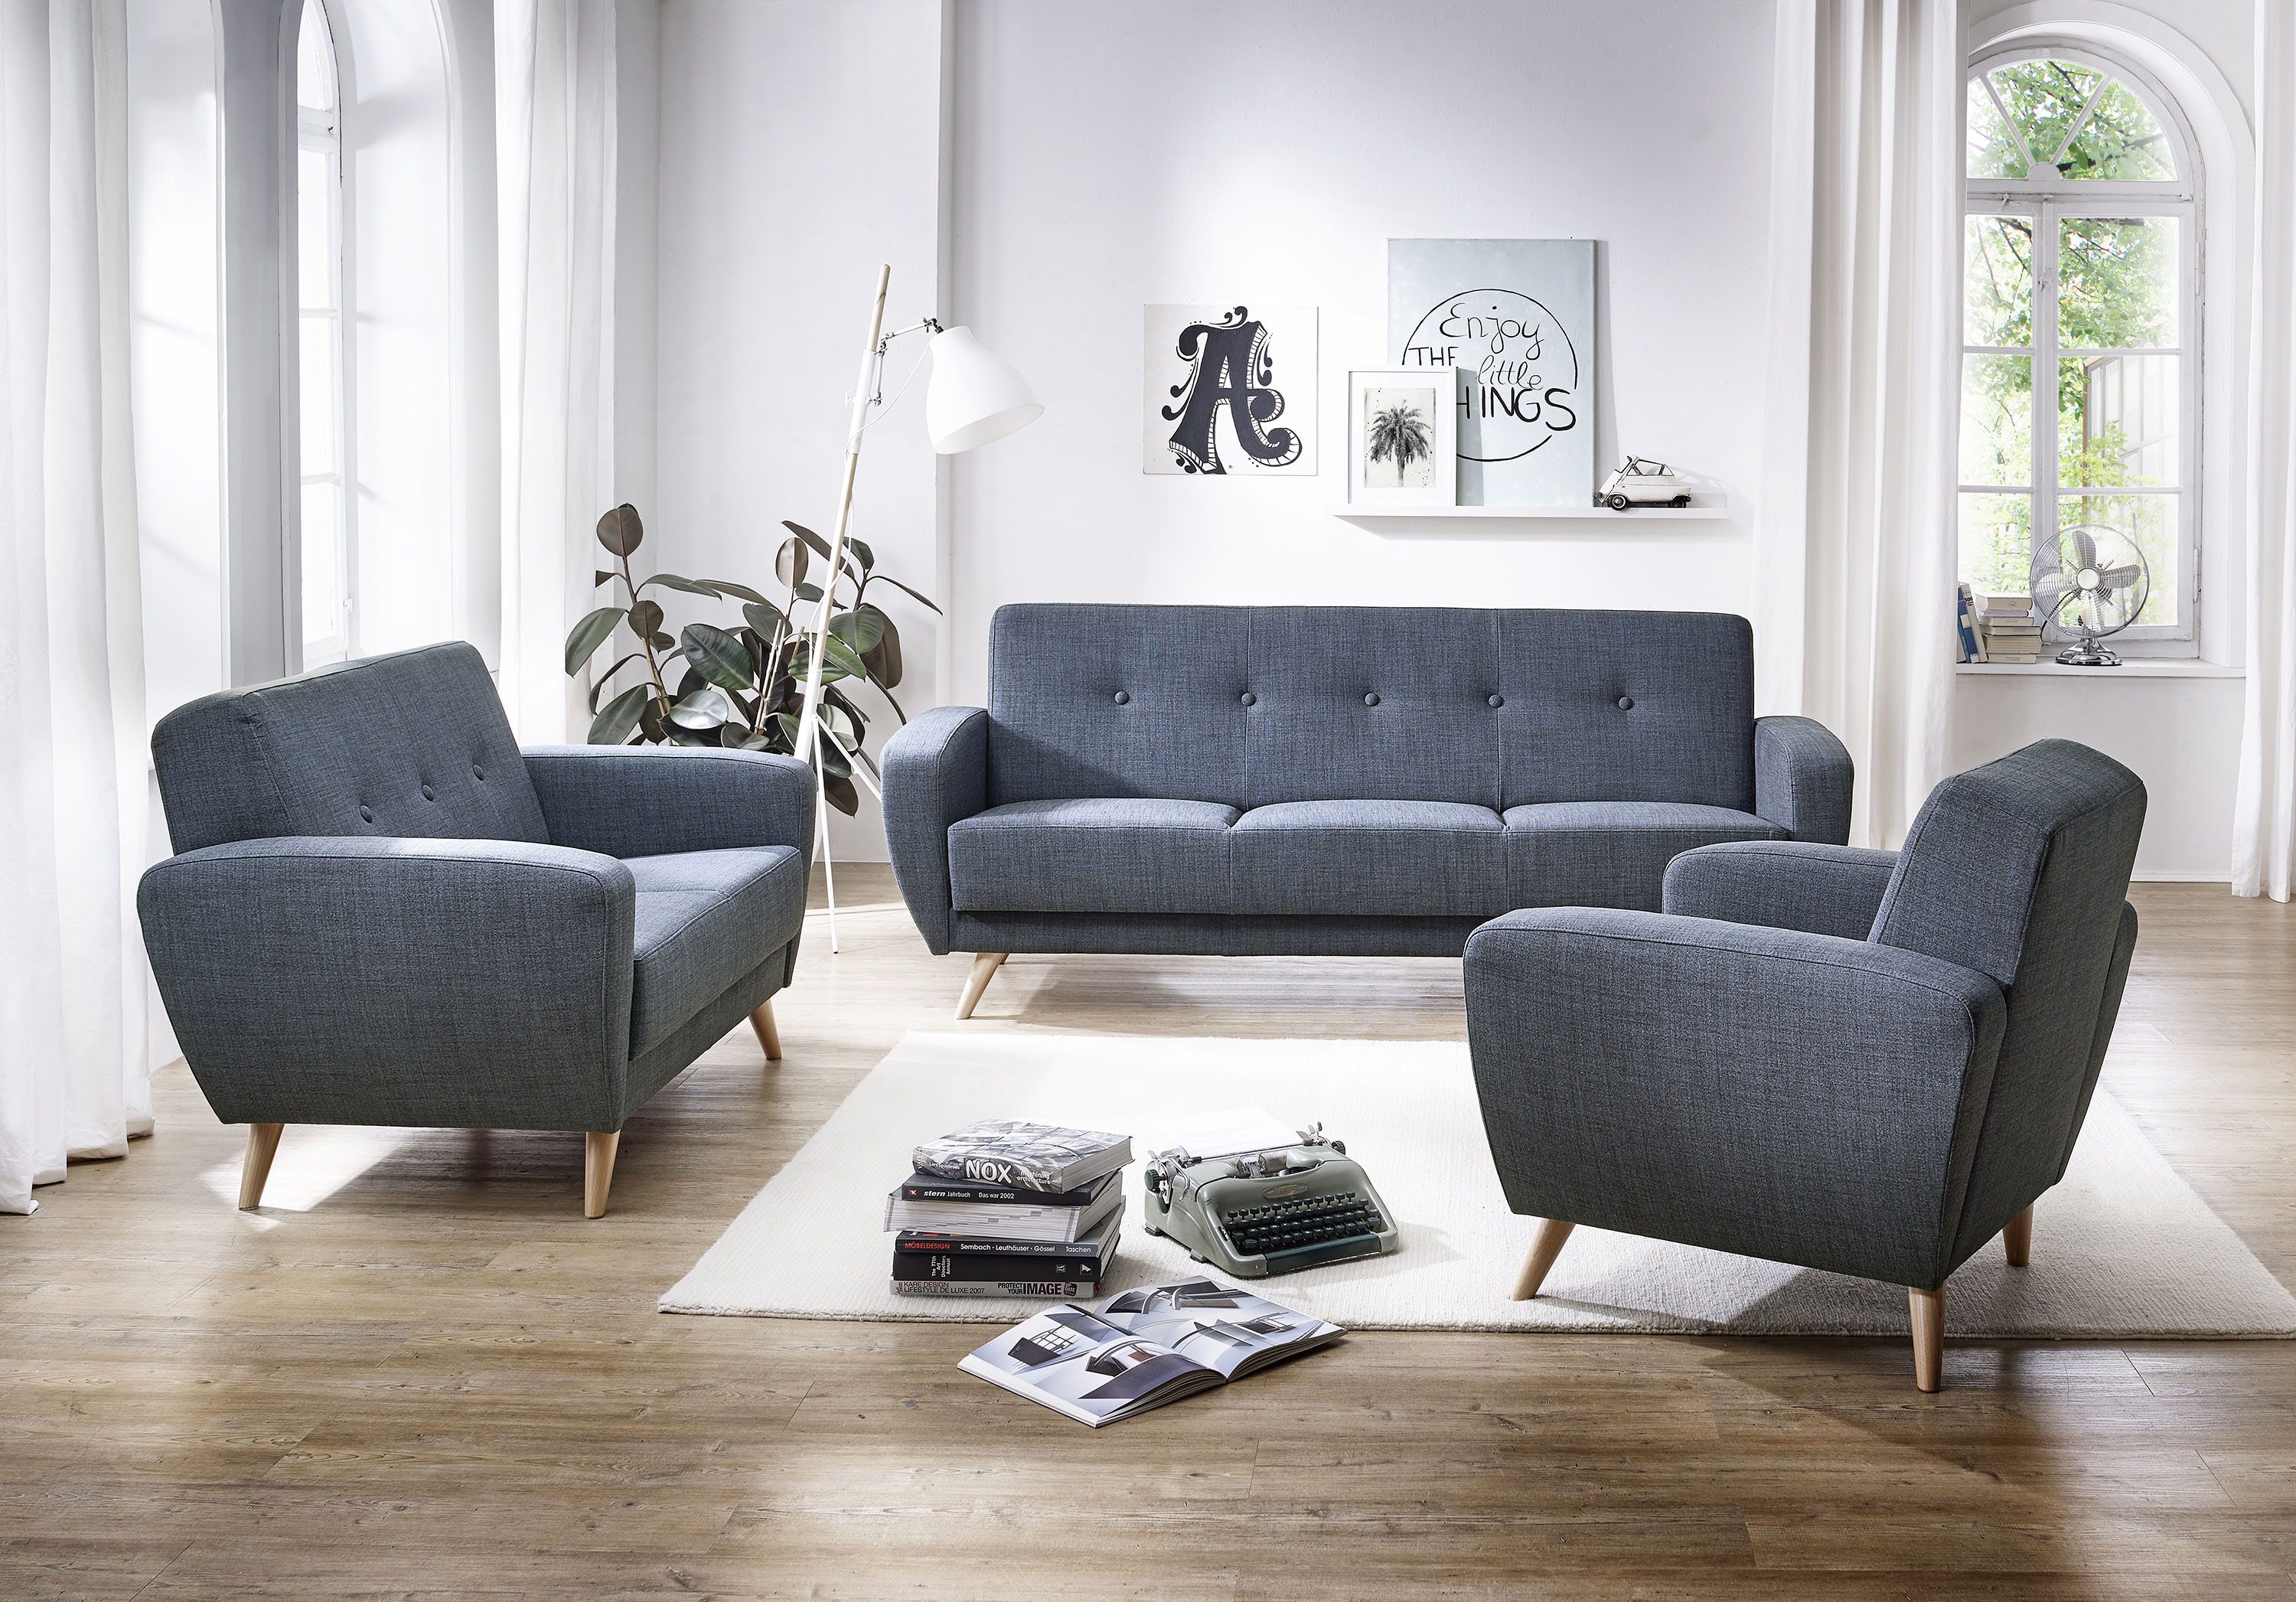 jerry sofa 3 sitzer mit bettfunktion flachgewebe. Black Bedroom Furniture Sets. Home Design Ideas